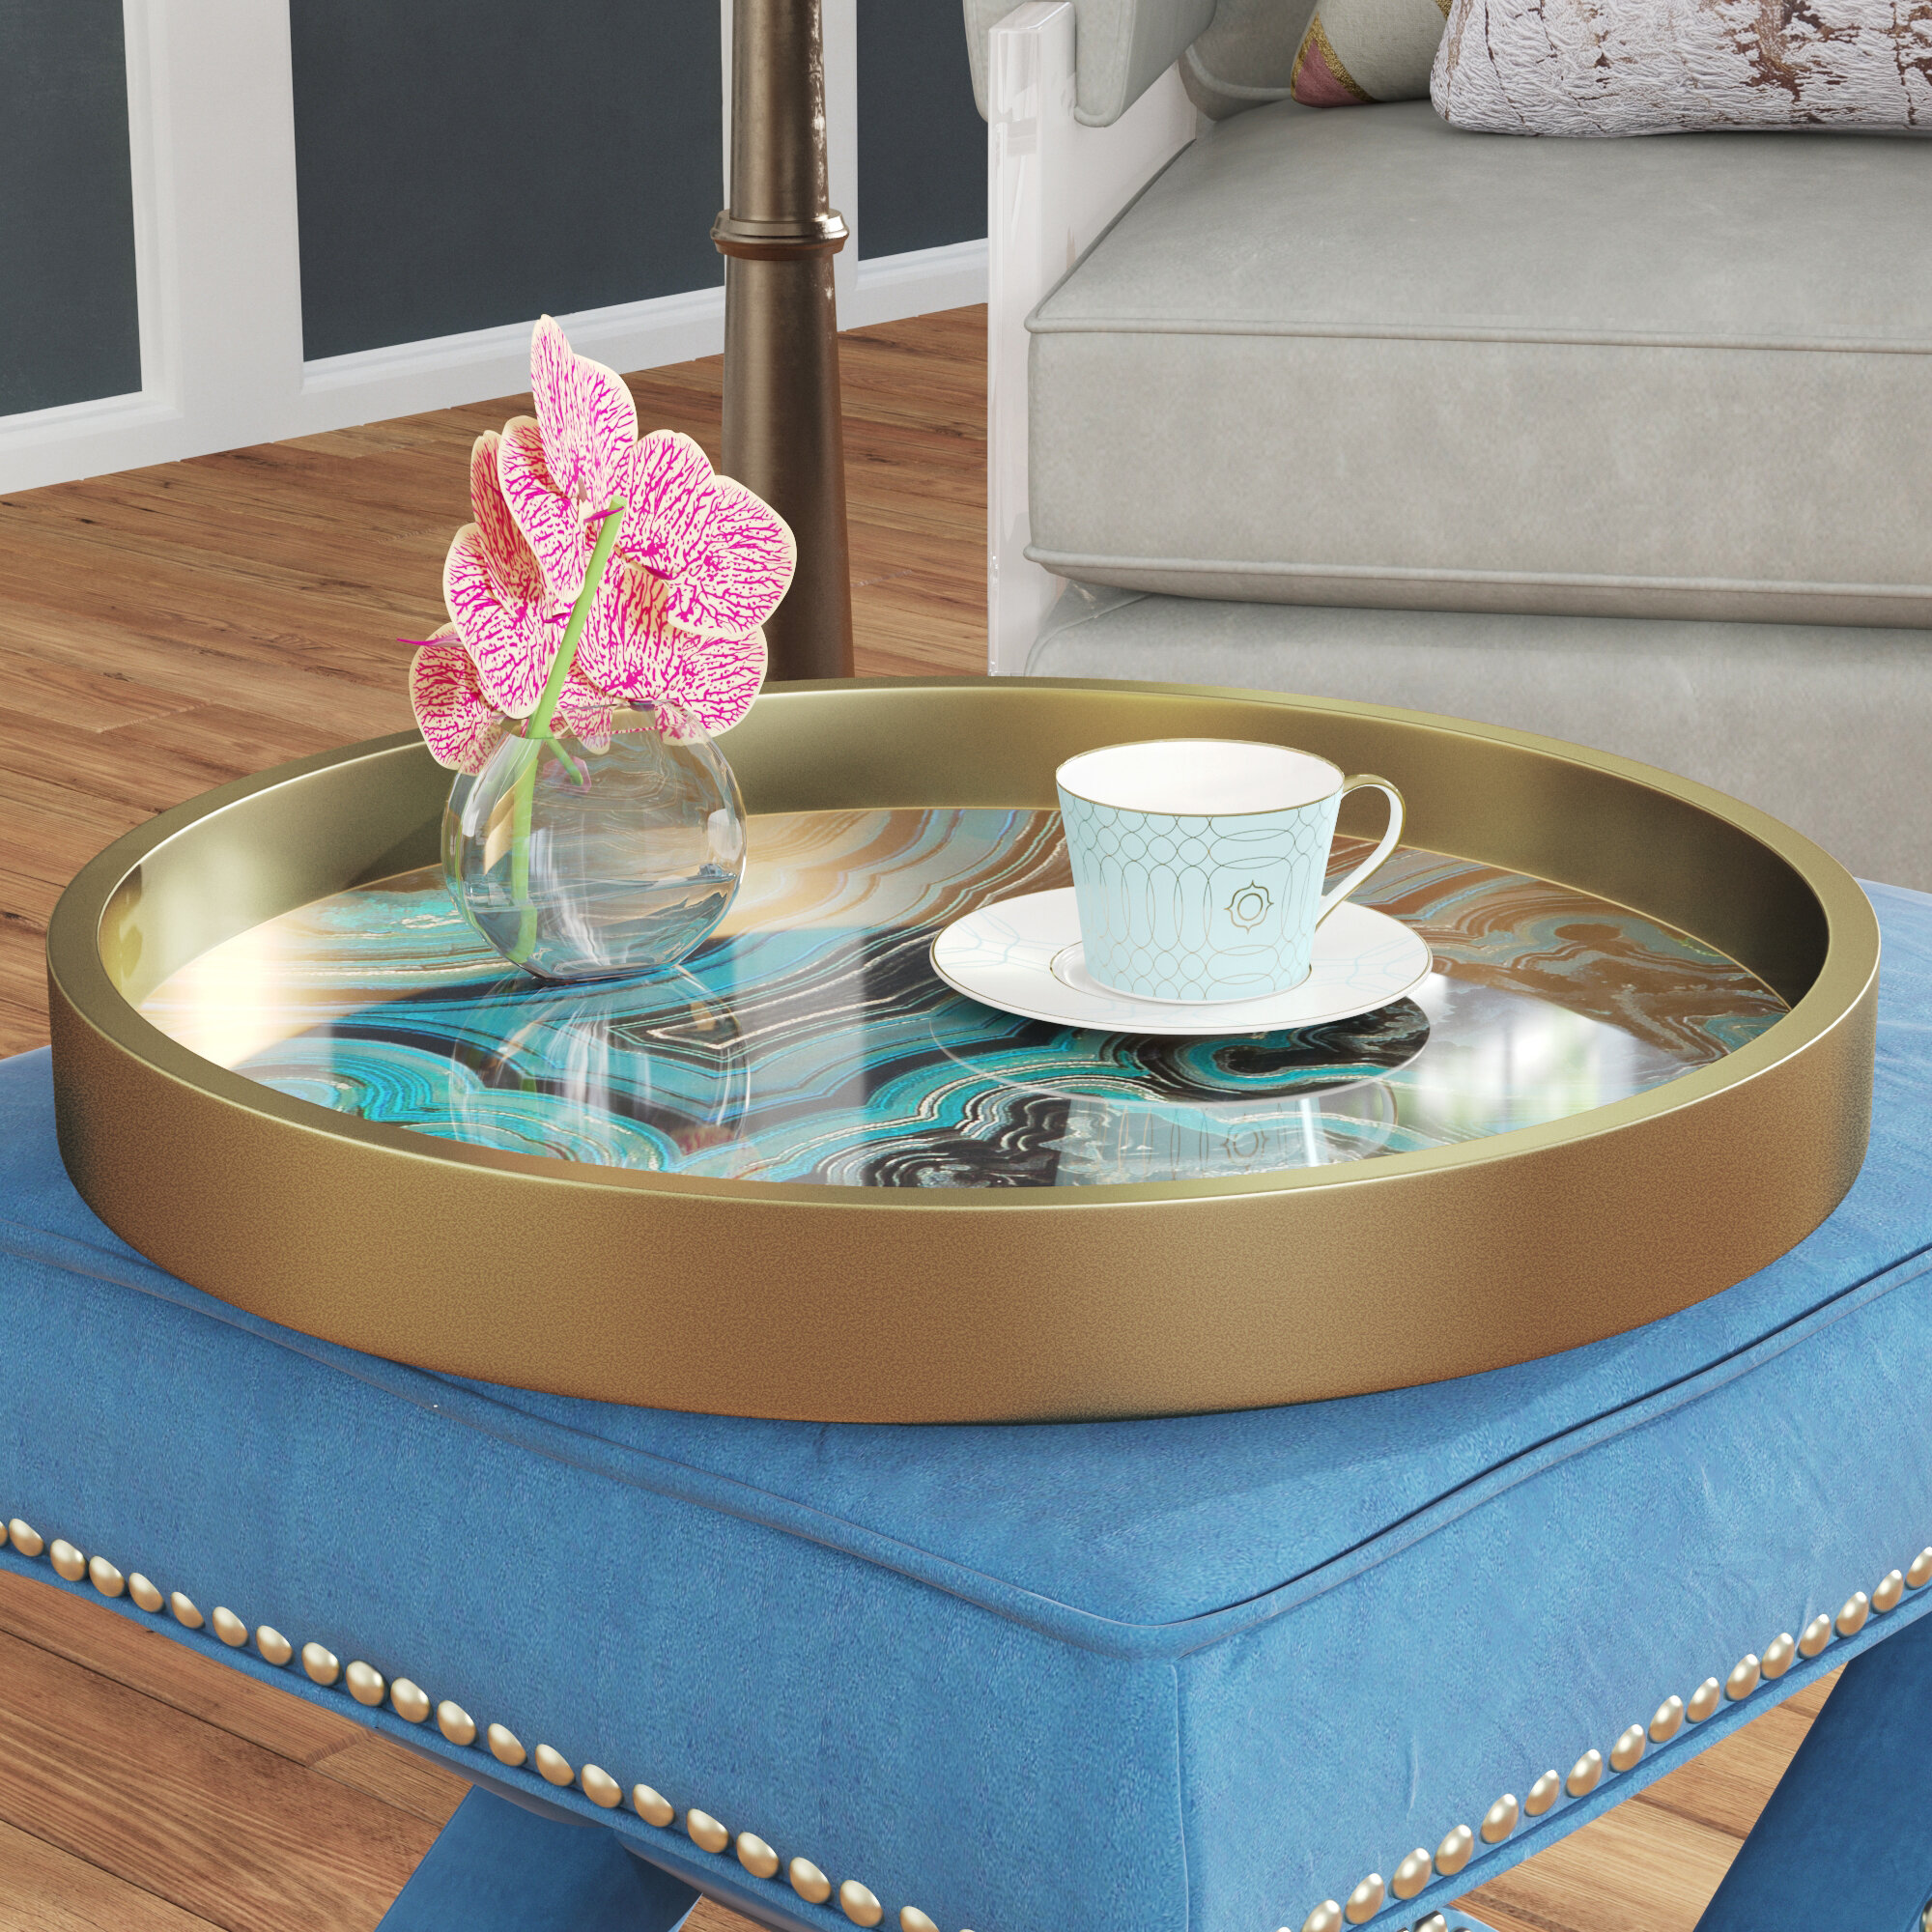 Round Serving Decorative Trays You Ll Love In 2021 Wayfair